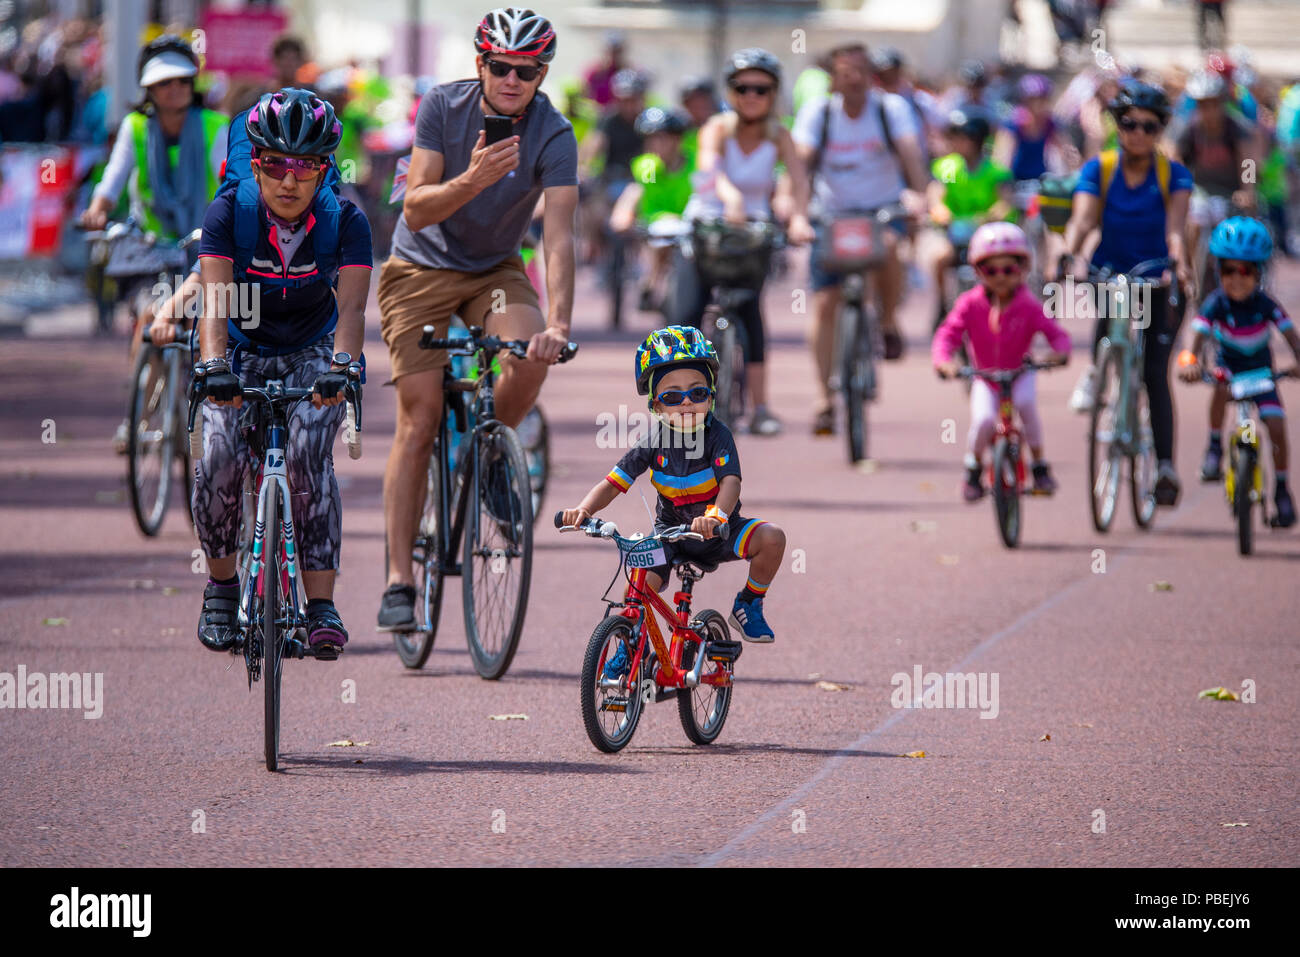 the-mall-london-uk-freecycle-part-of-prudential-ridelondon-weekend-public-riding-on-closed-roads-of-central-london-PBEJY6.jpg